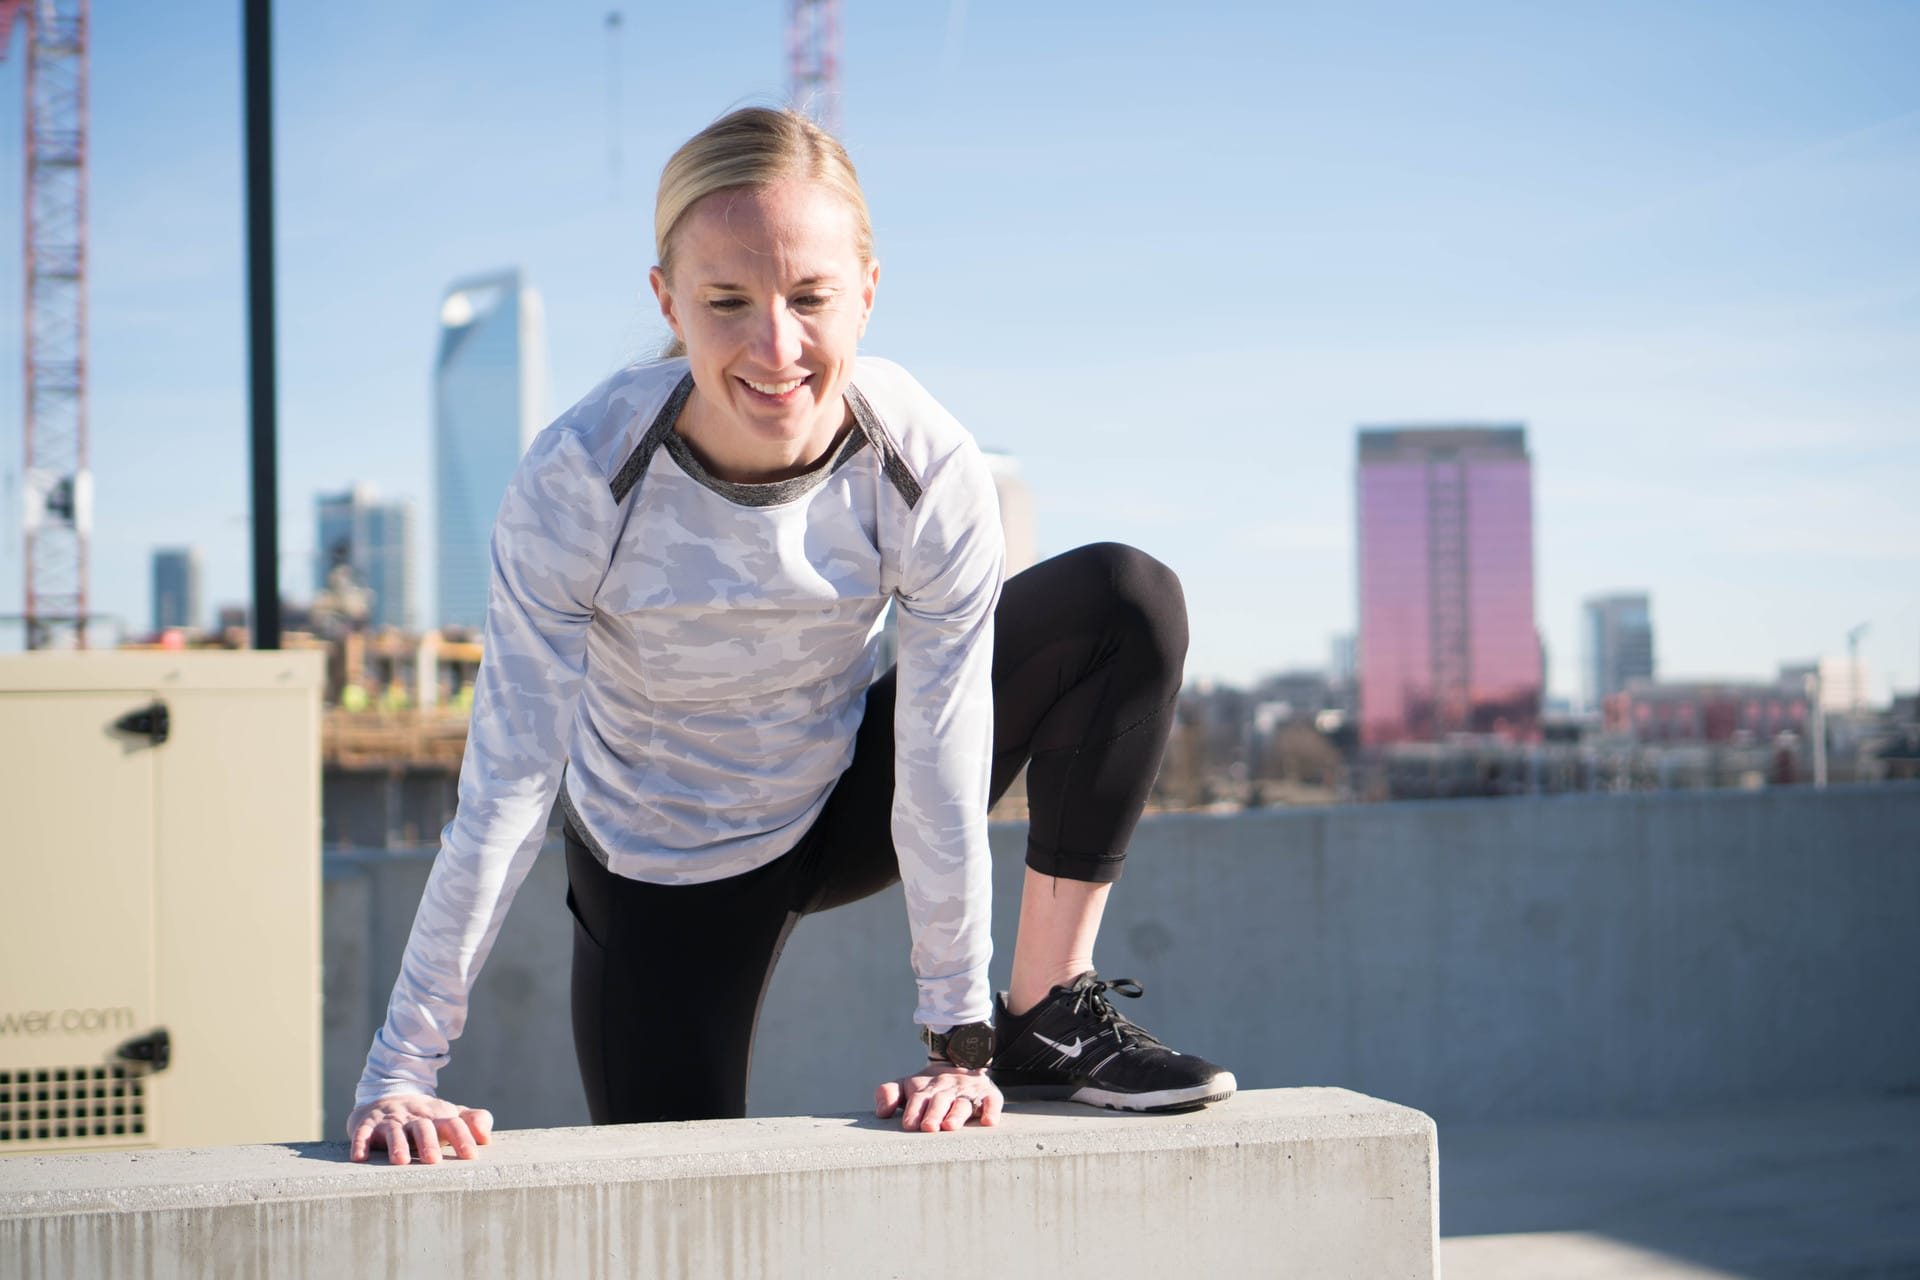 Fitness instructor with Charlotte skyline in background